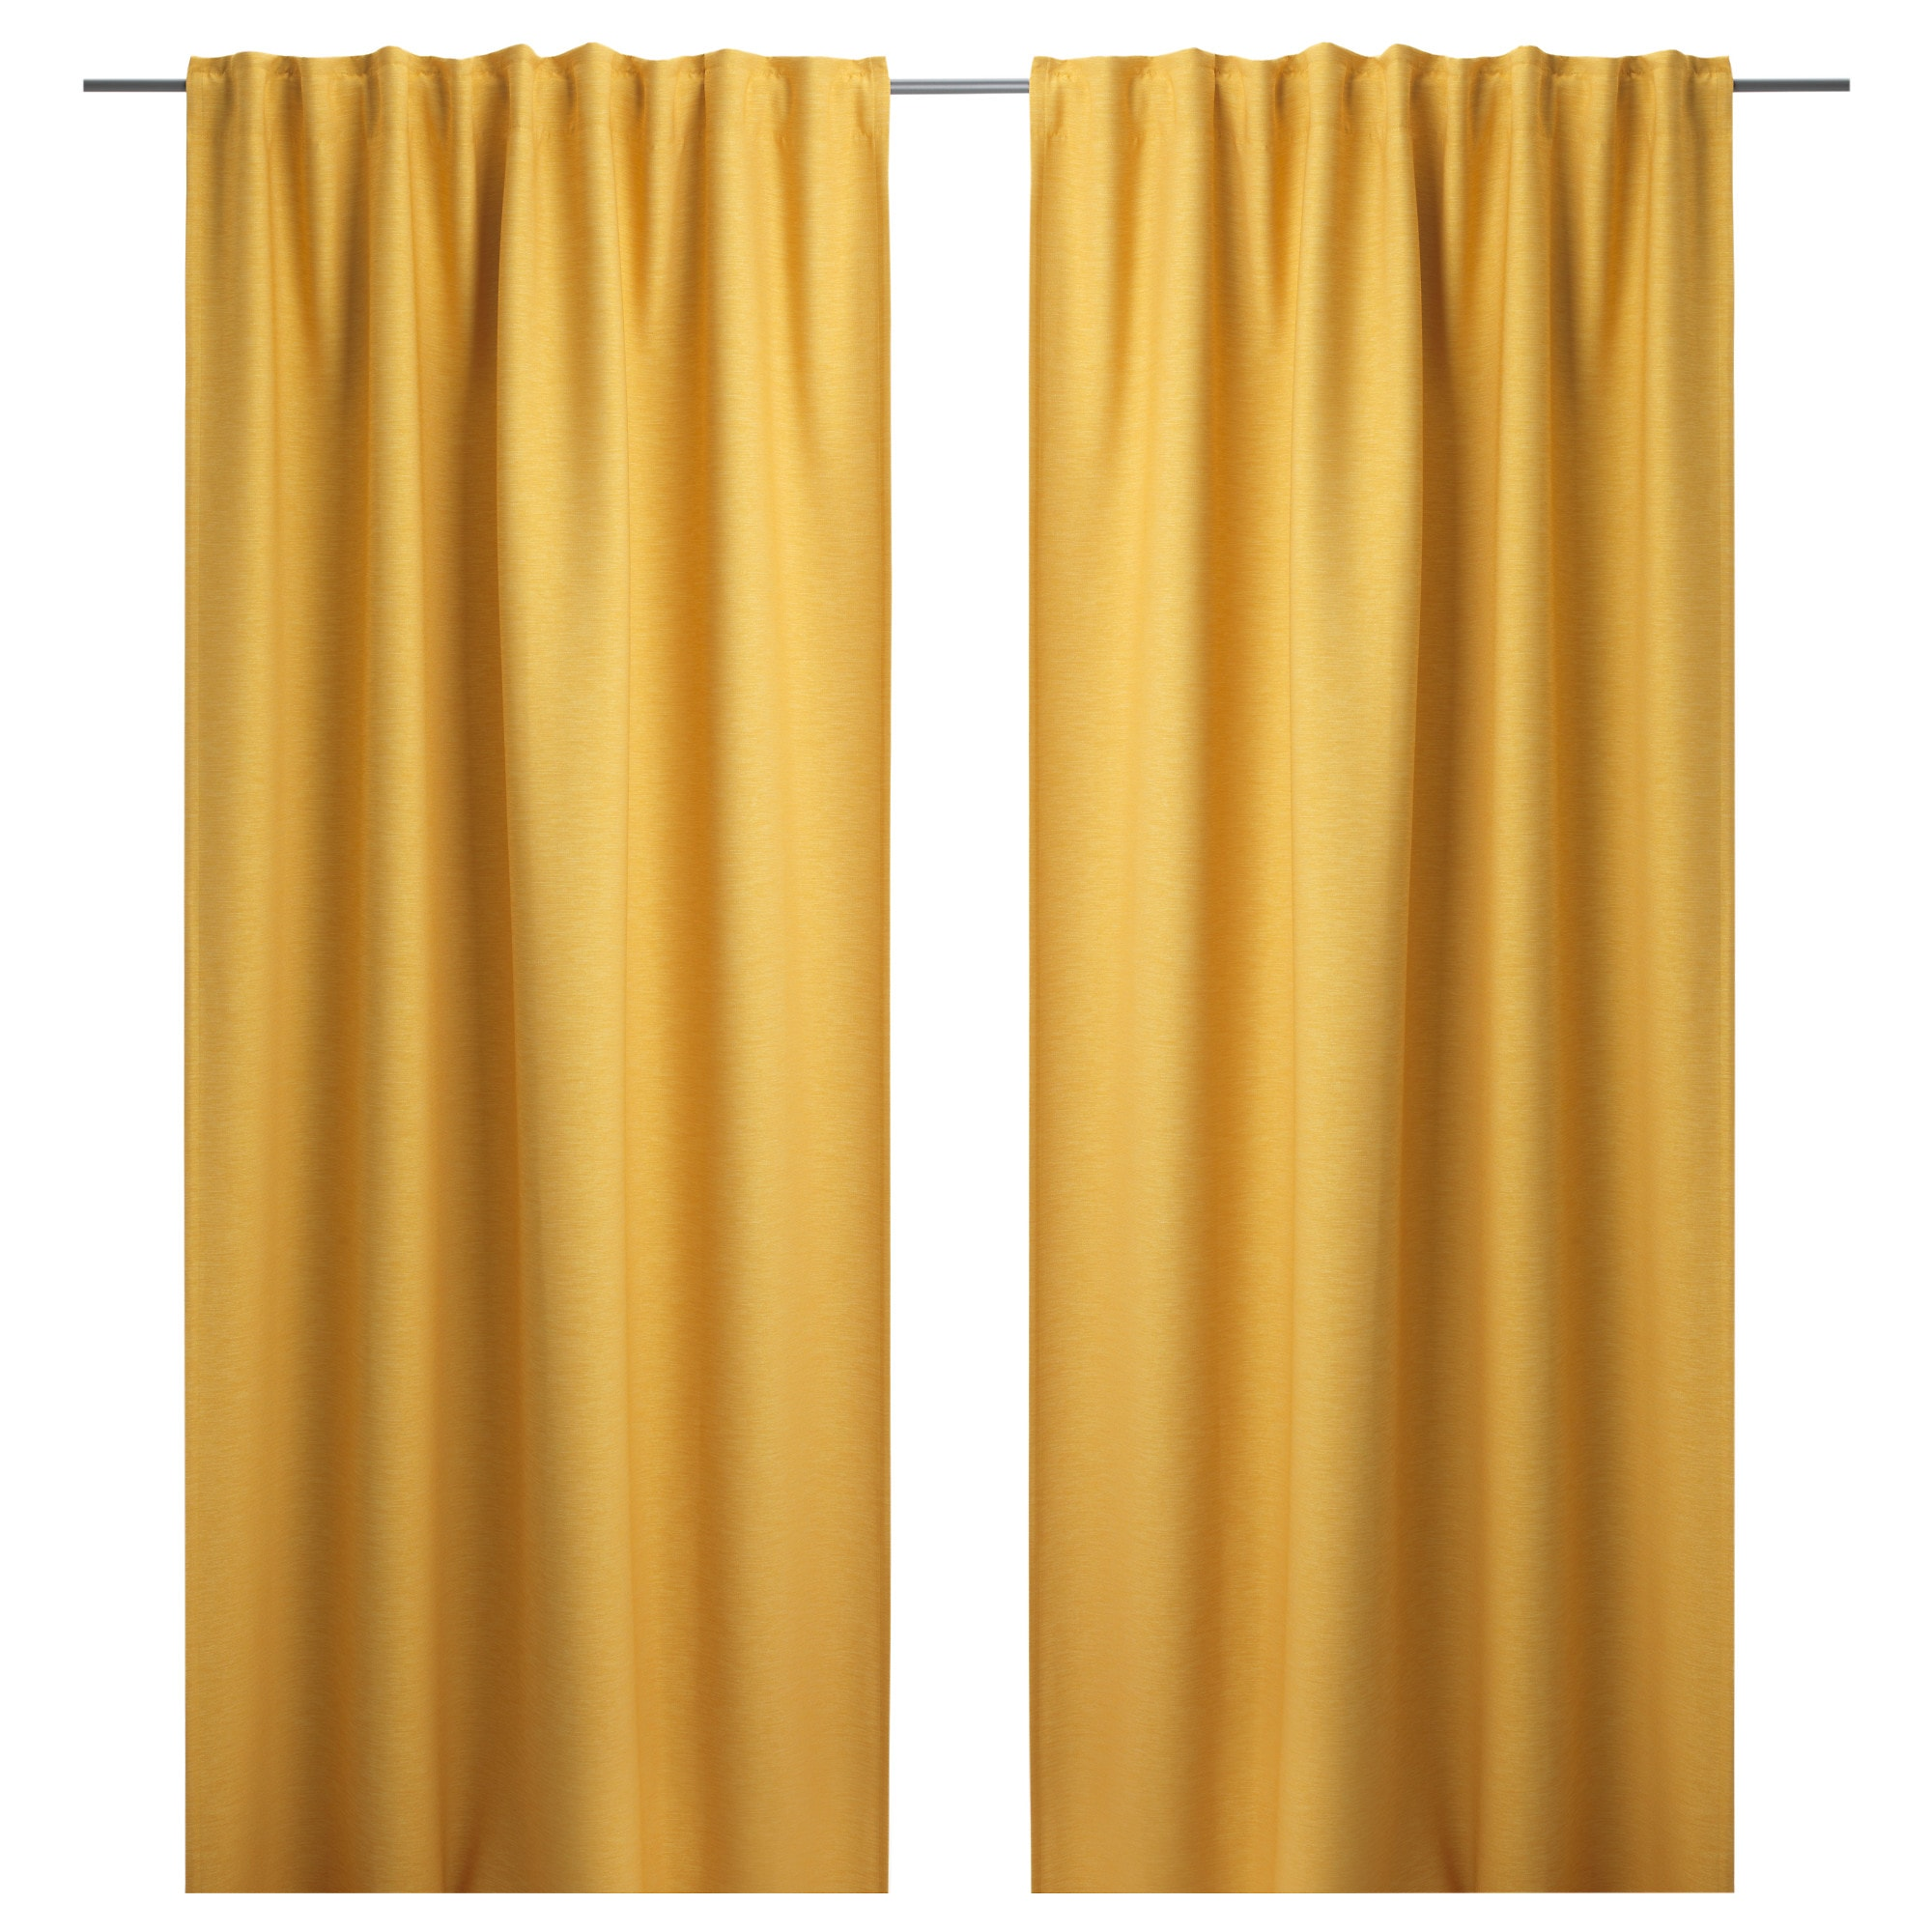 VILBORG Curtains, 1 Pair   IKEA